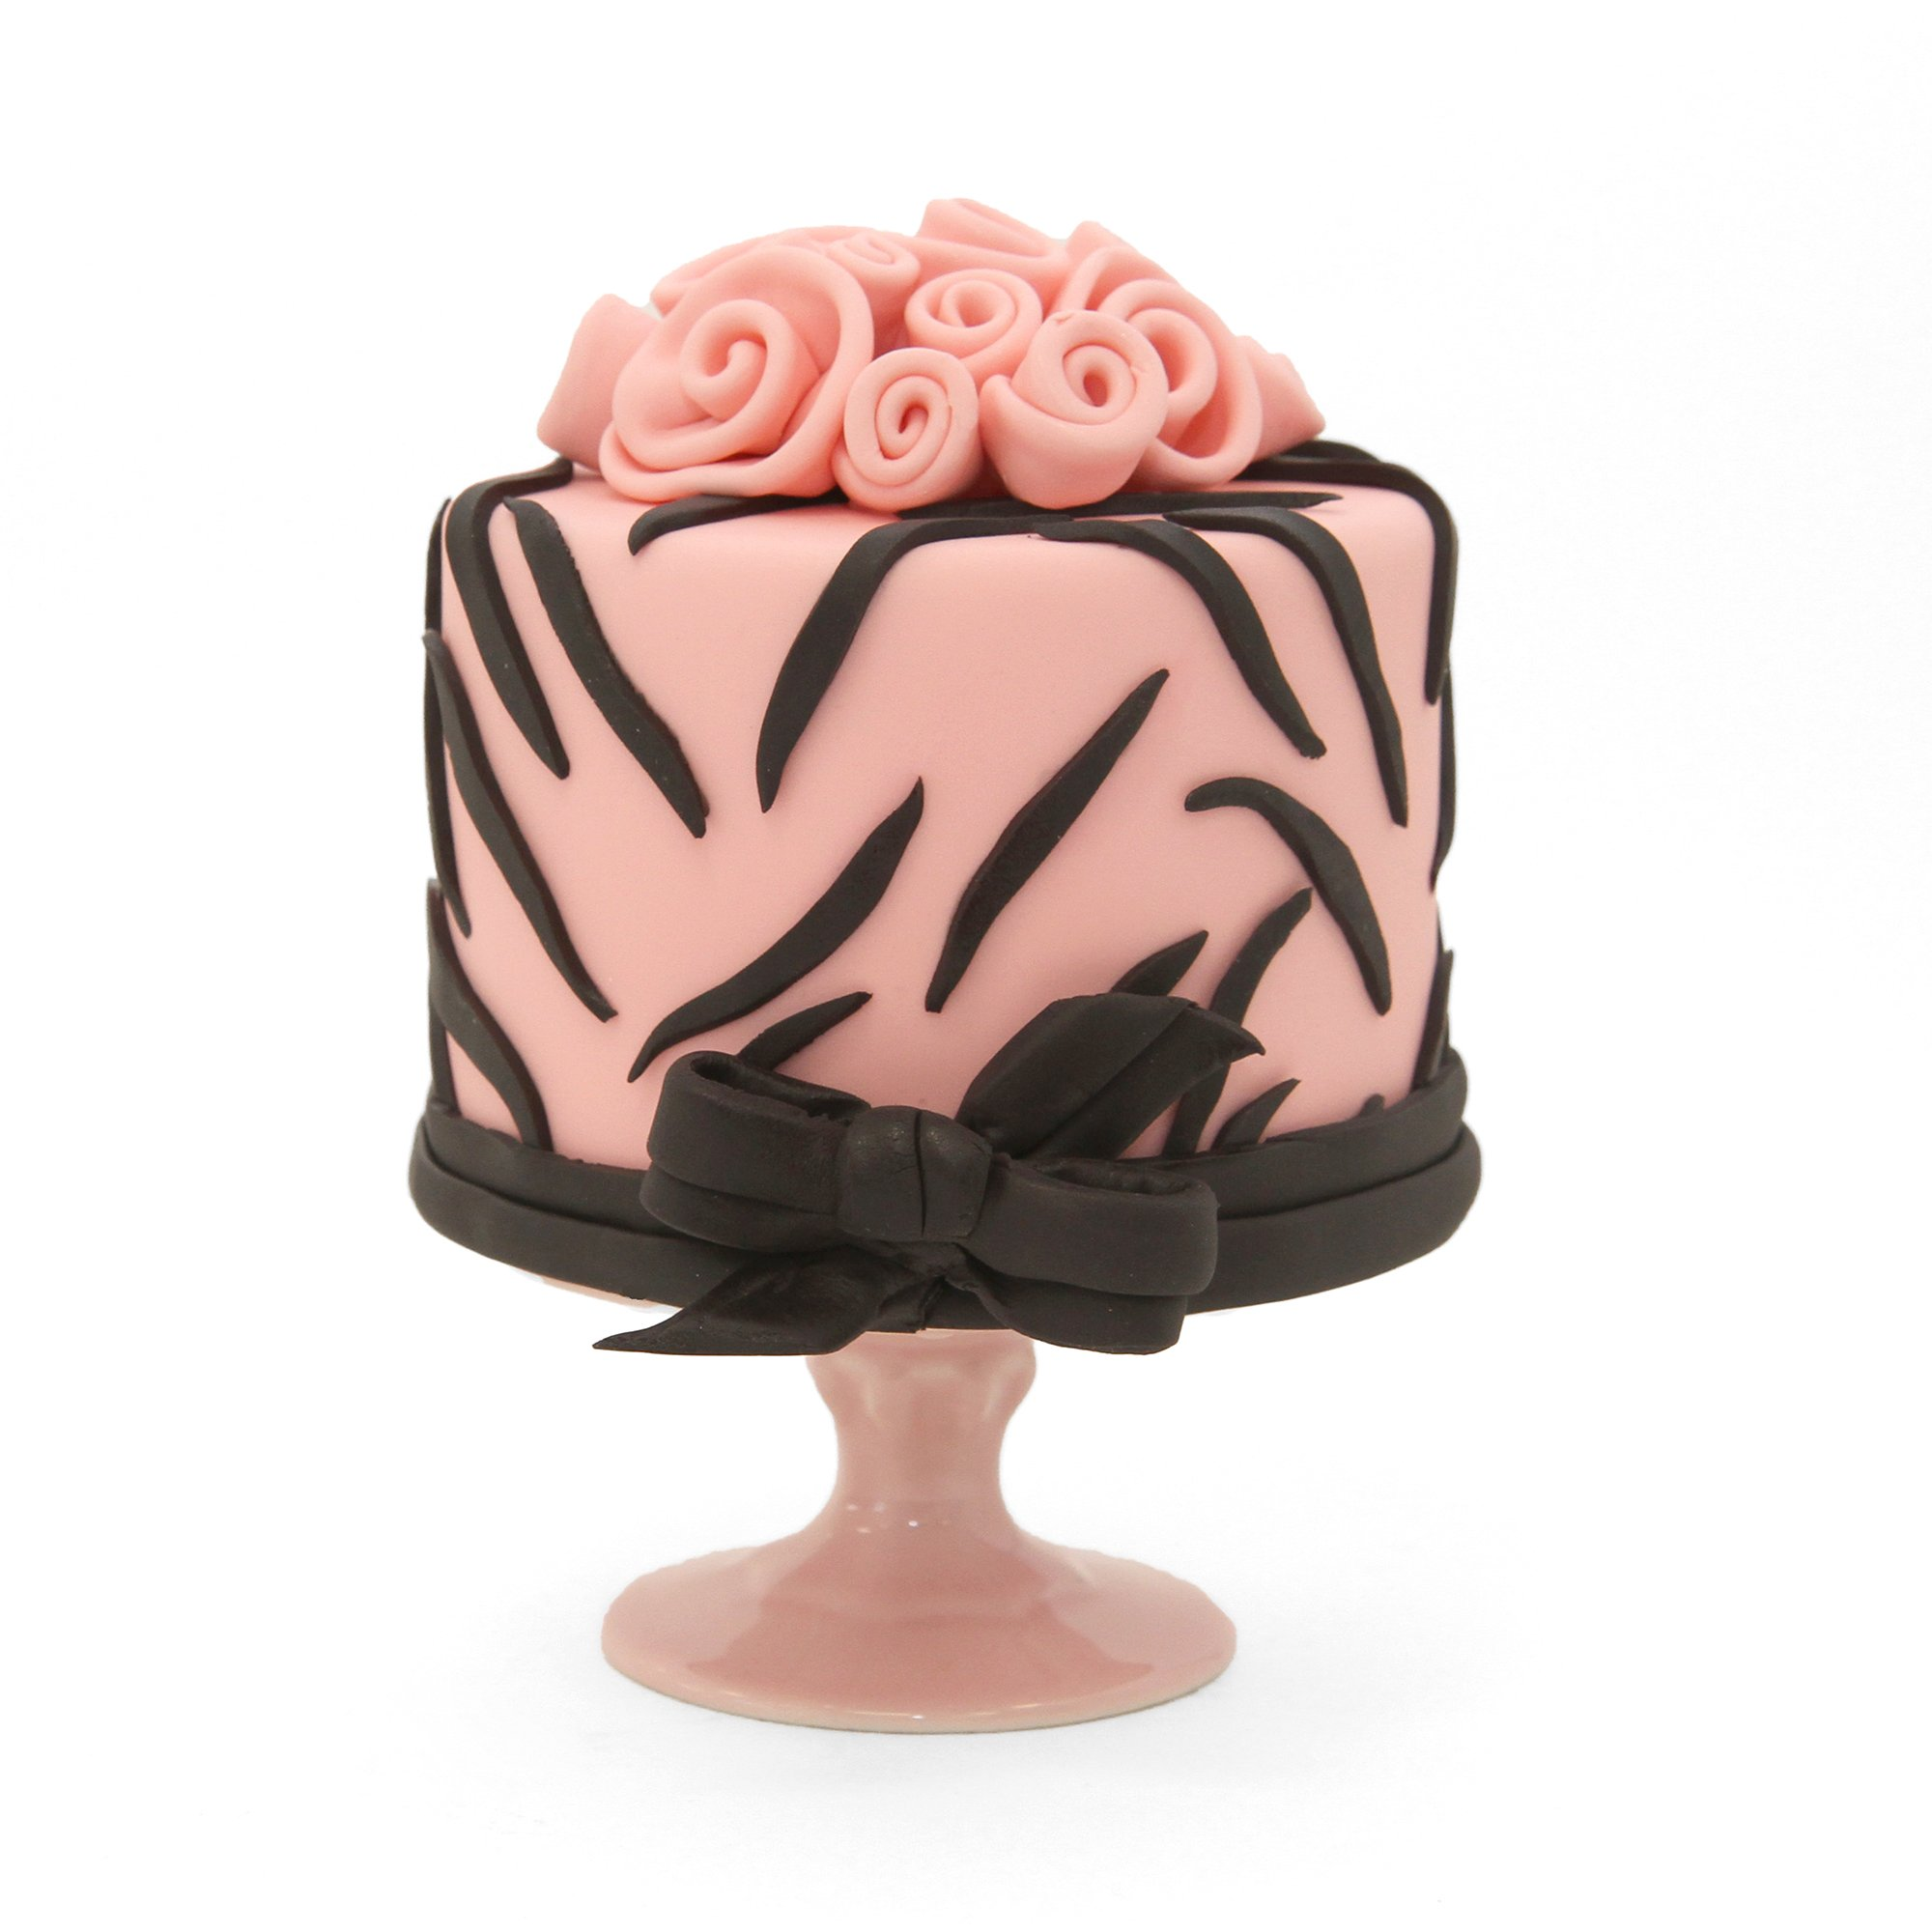 Satin Ice Baby Pink Fondant, Vanilla, 2 Pounds by Satin Ice (Image #3)